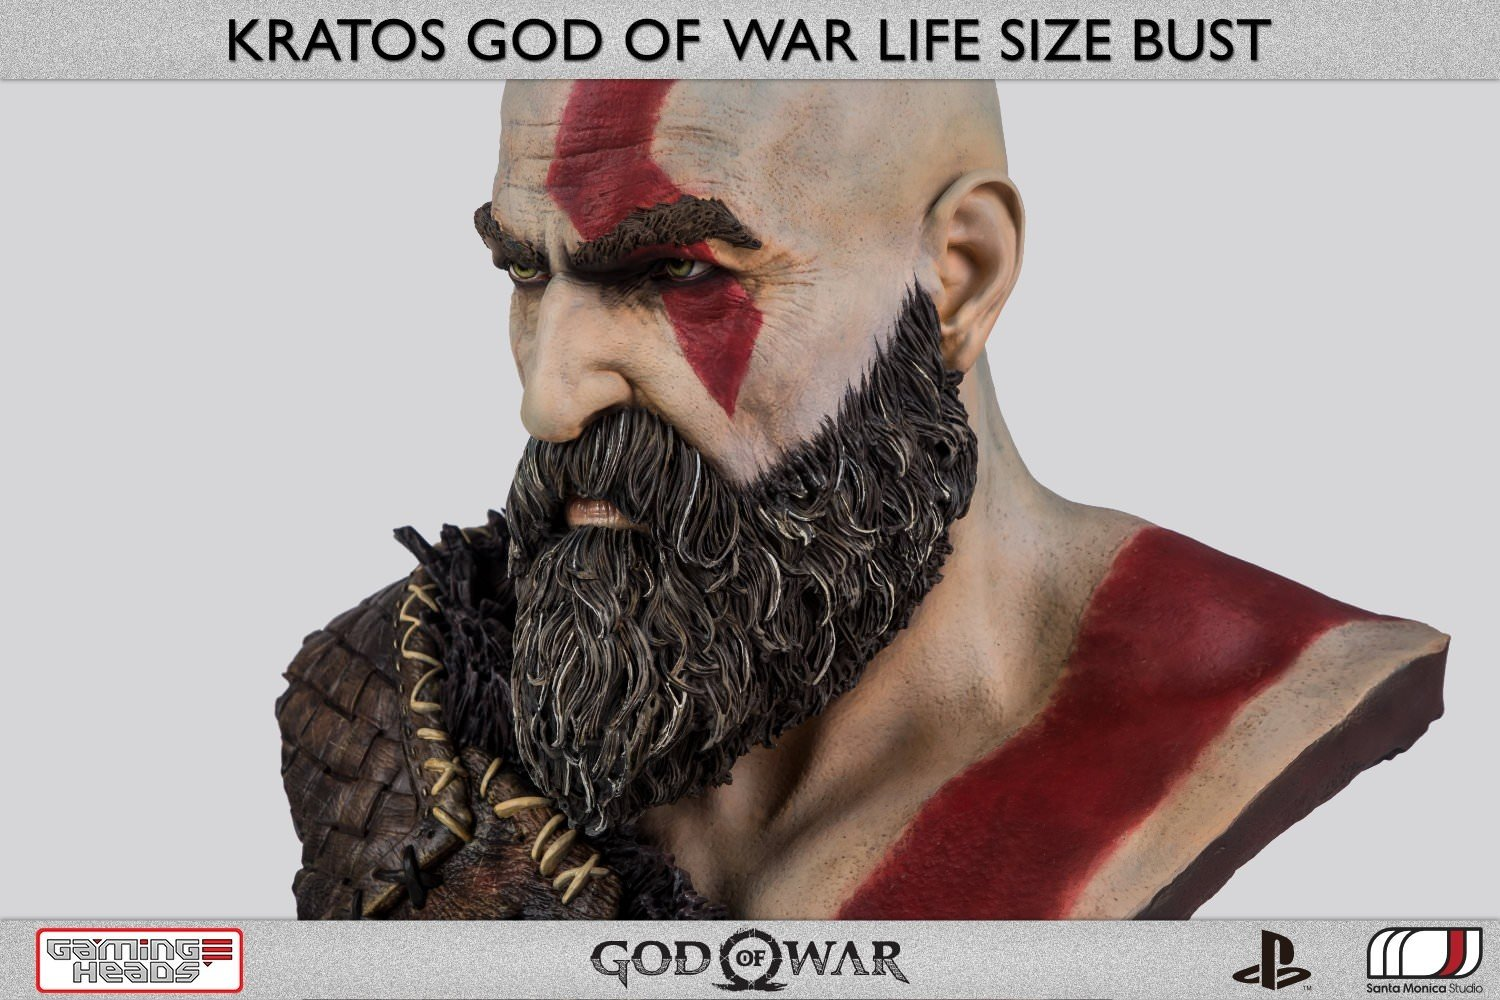 God Of War Second Anniversary Celebrated By Studio, Game Community